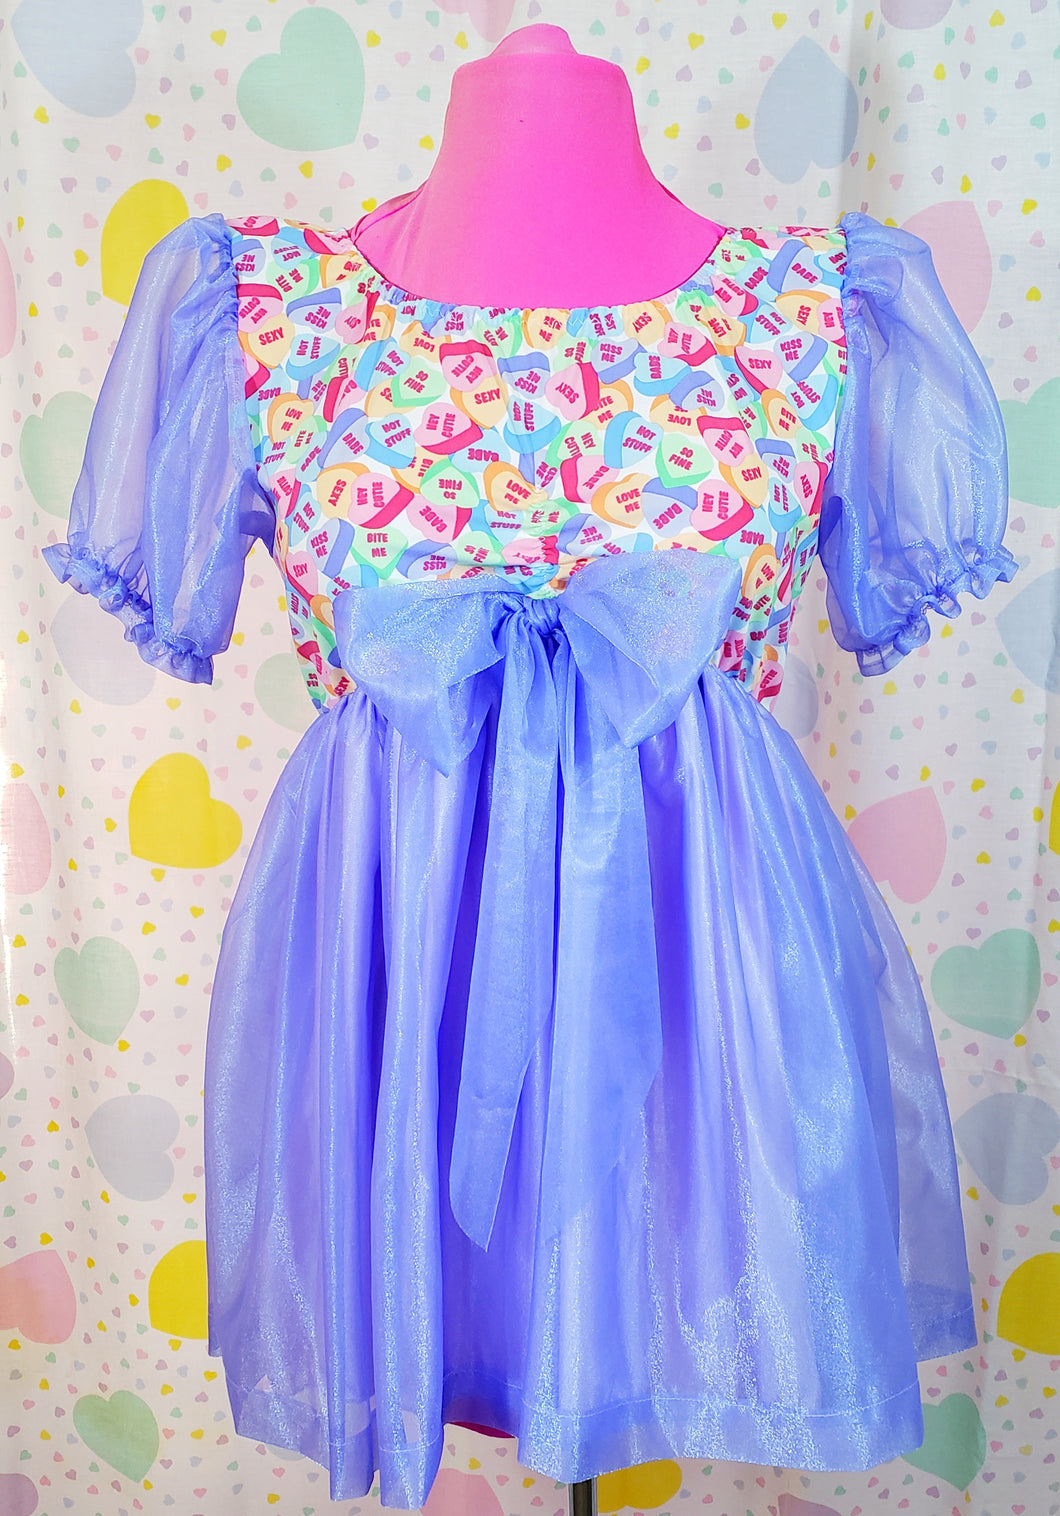 conversation hearts dress with purple sleeves and skirt